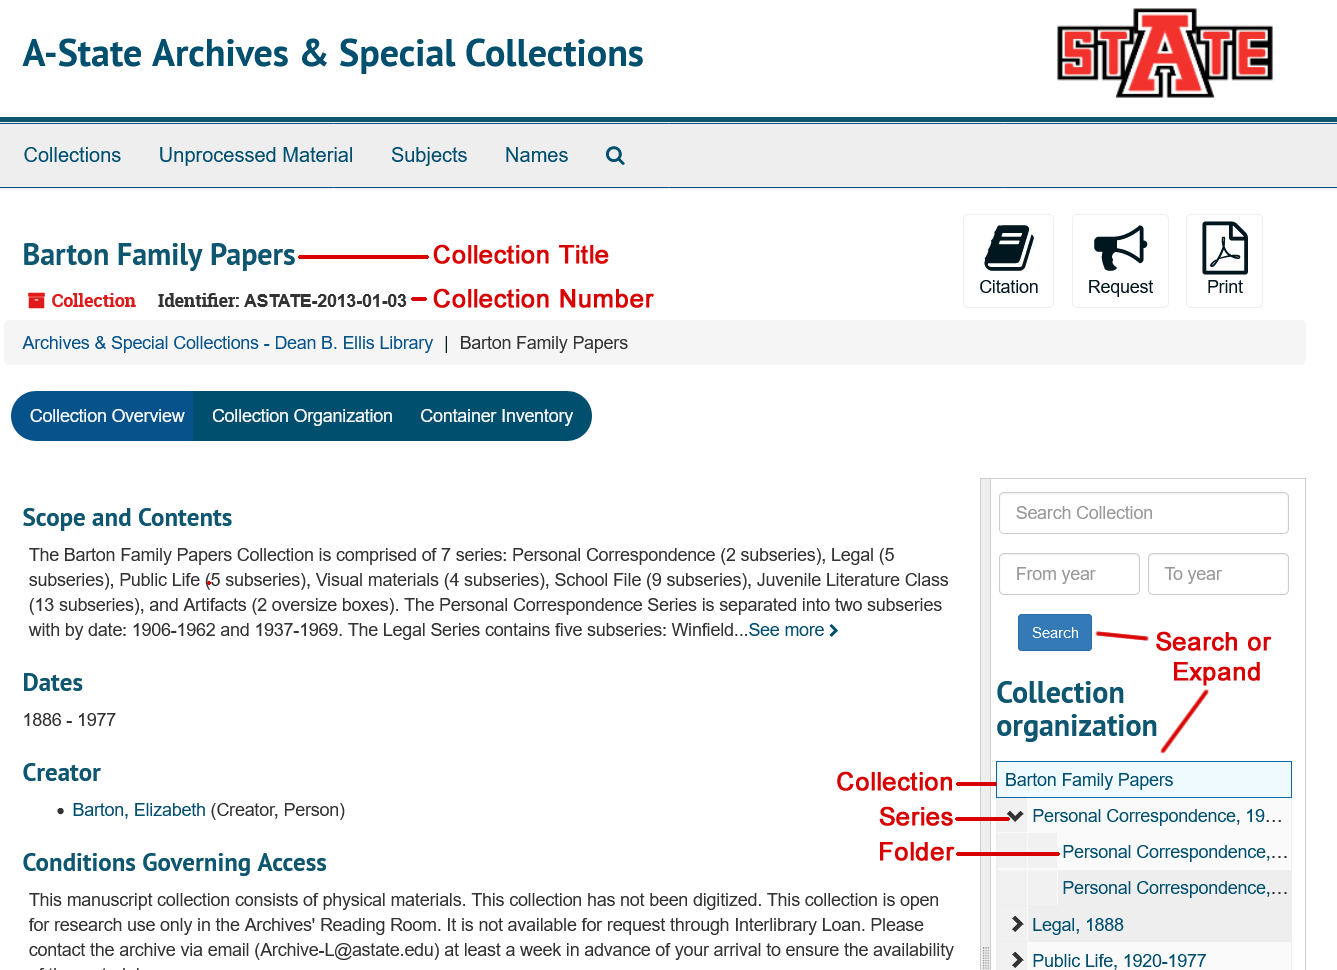 ArchivesSpace Collection Record Screenshot